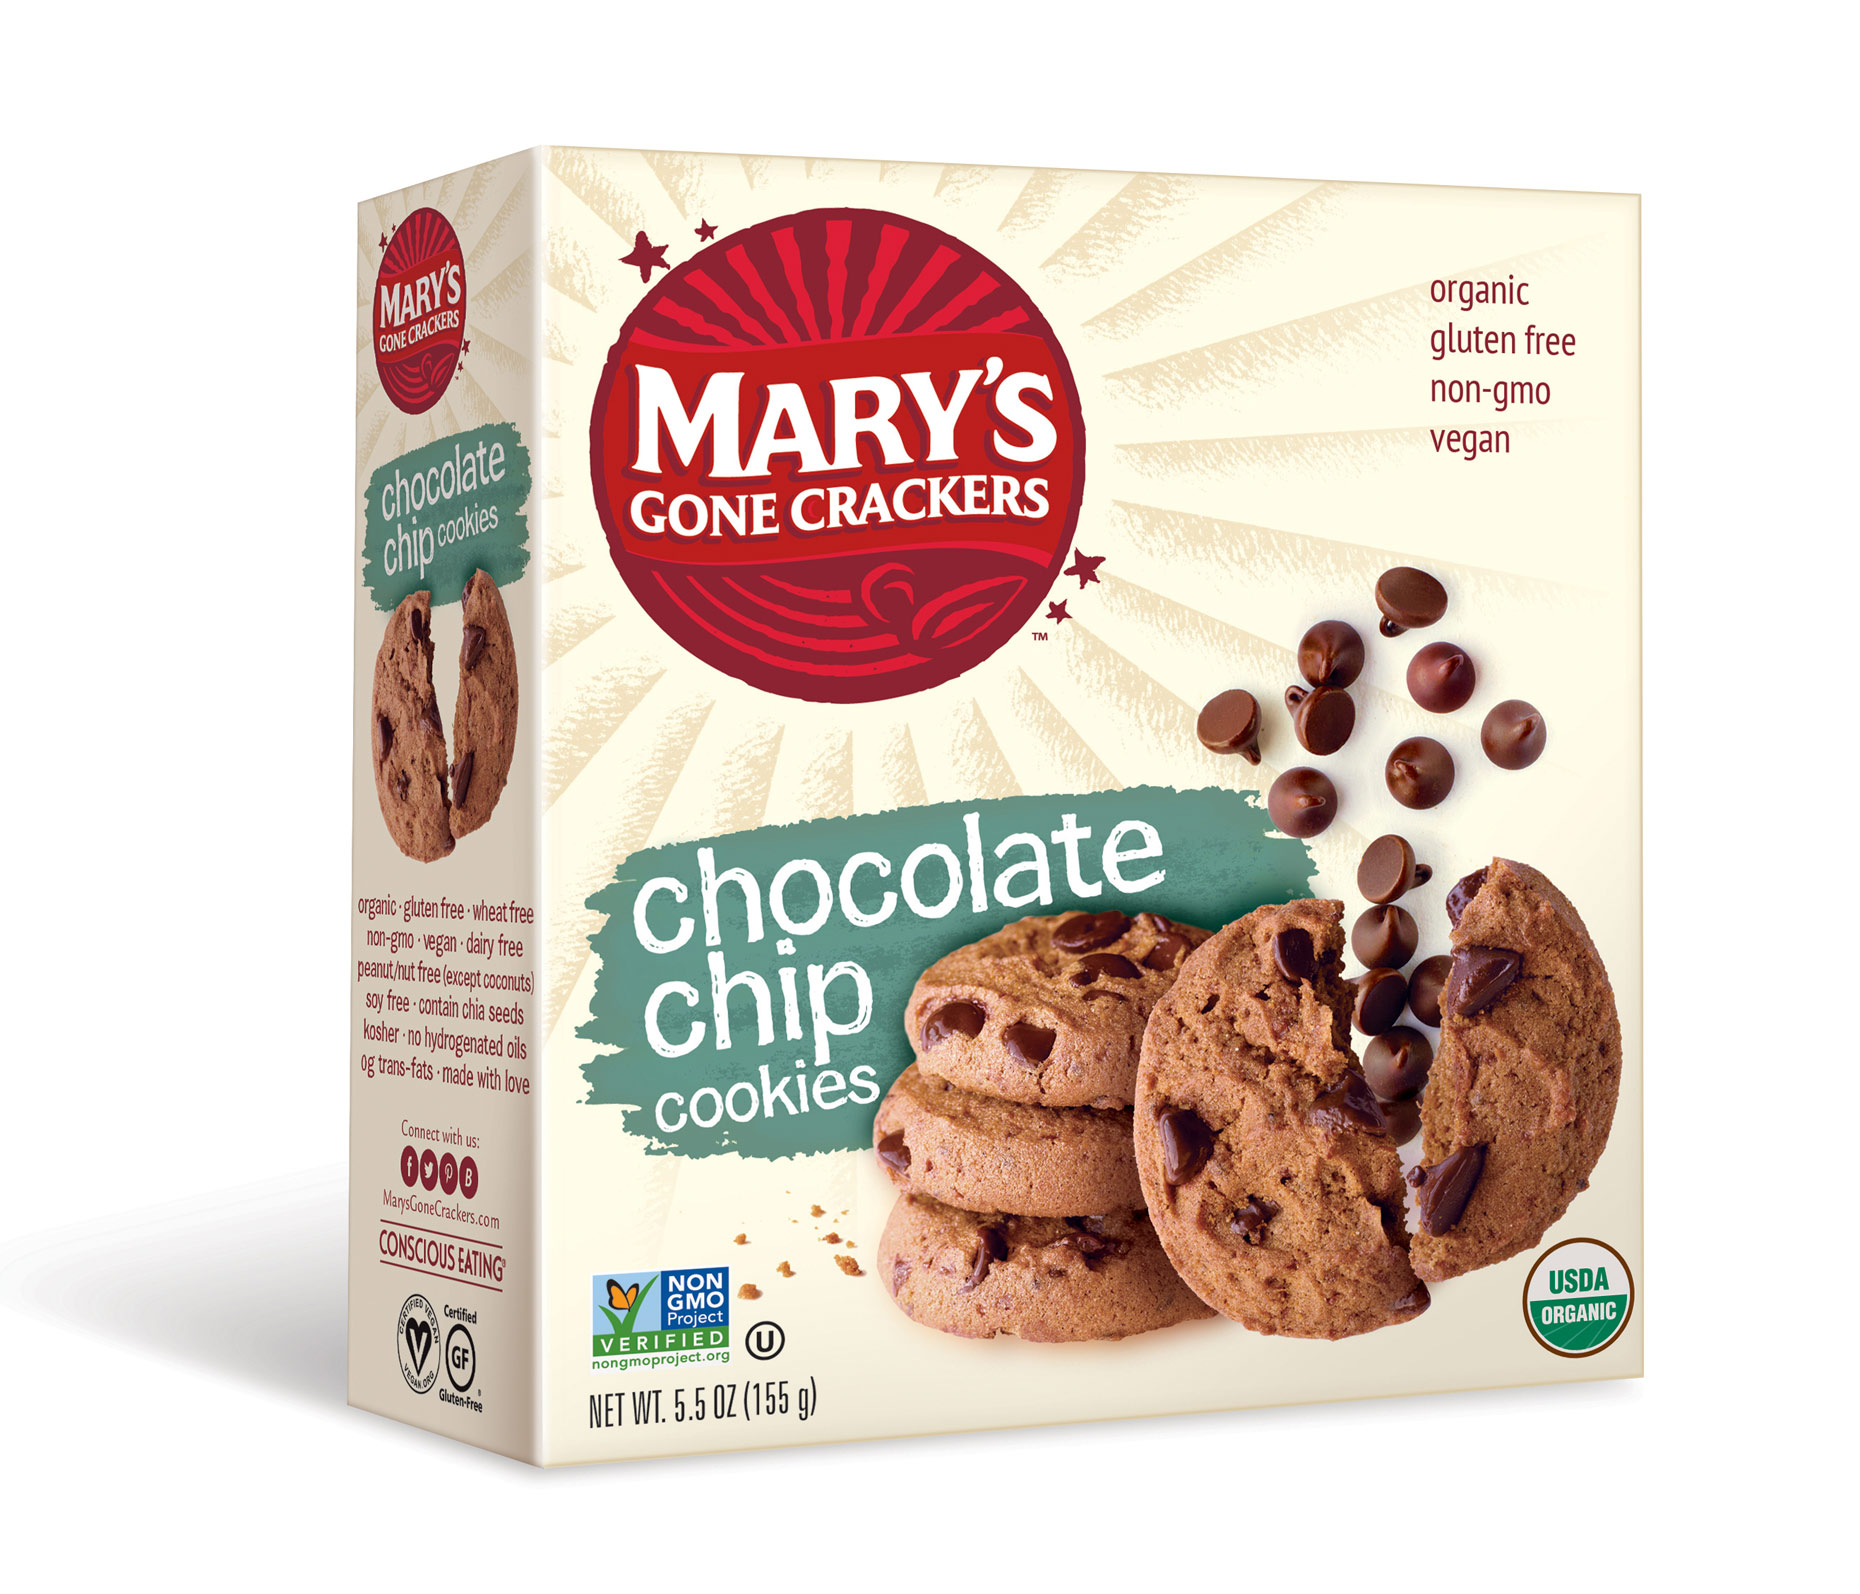 MGC_5.5oz_cookies_chocolate_chip_3dbox_CMYK_300dpi_9.6x8.1in